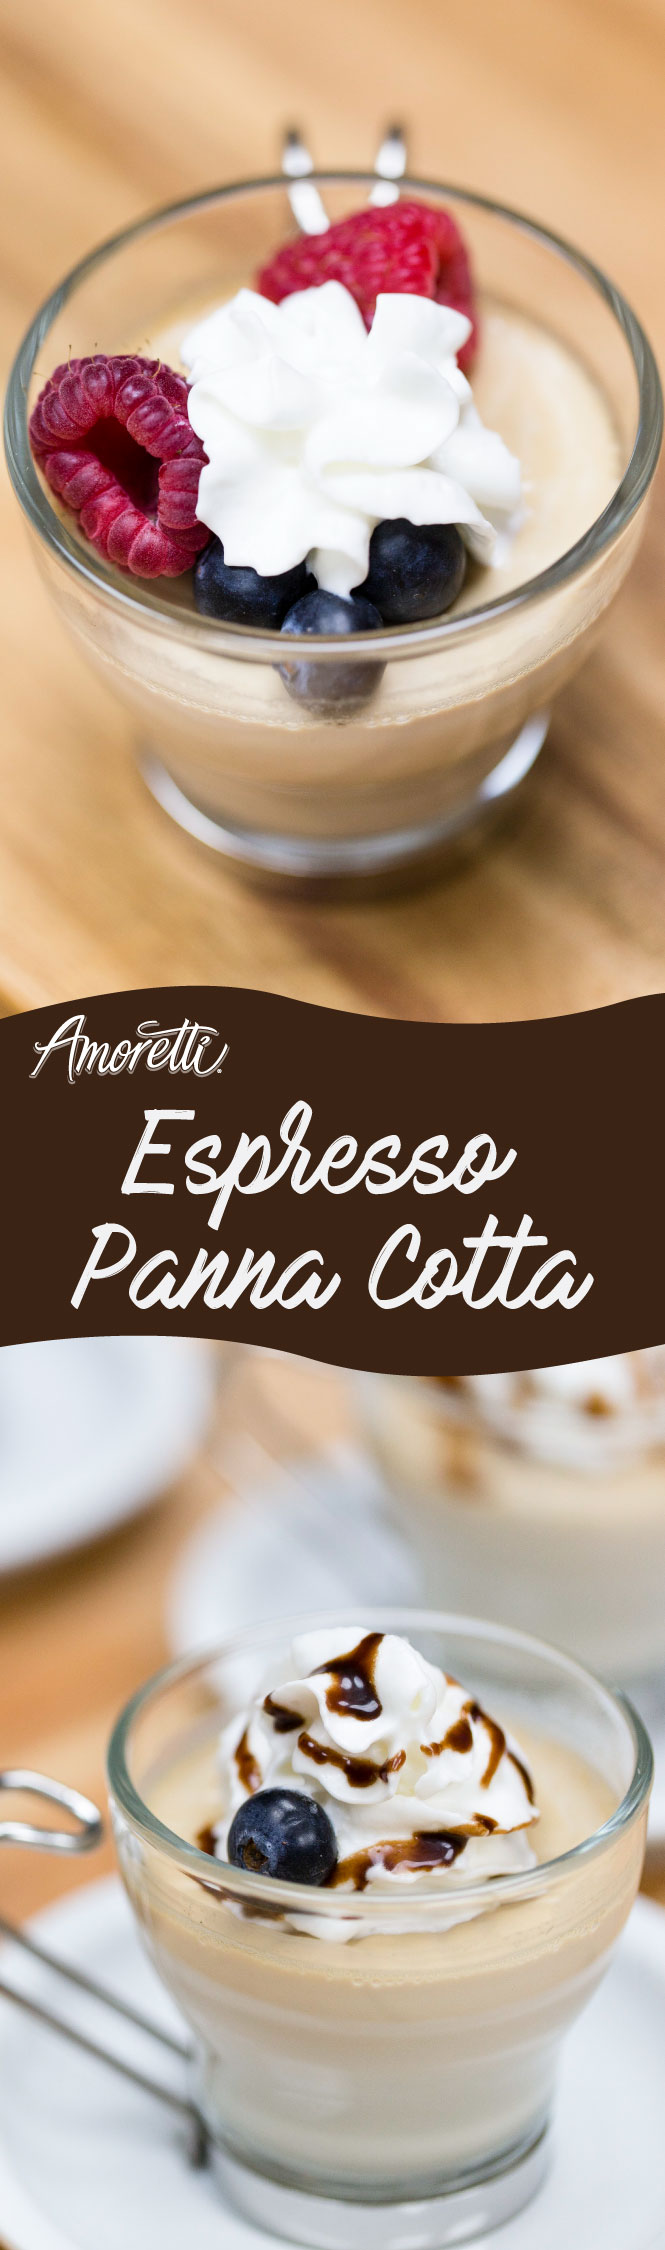 Everything tastes amazing with some coffee flavor, this panna cotta recipe is no exception!